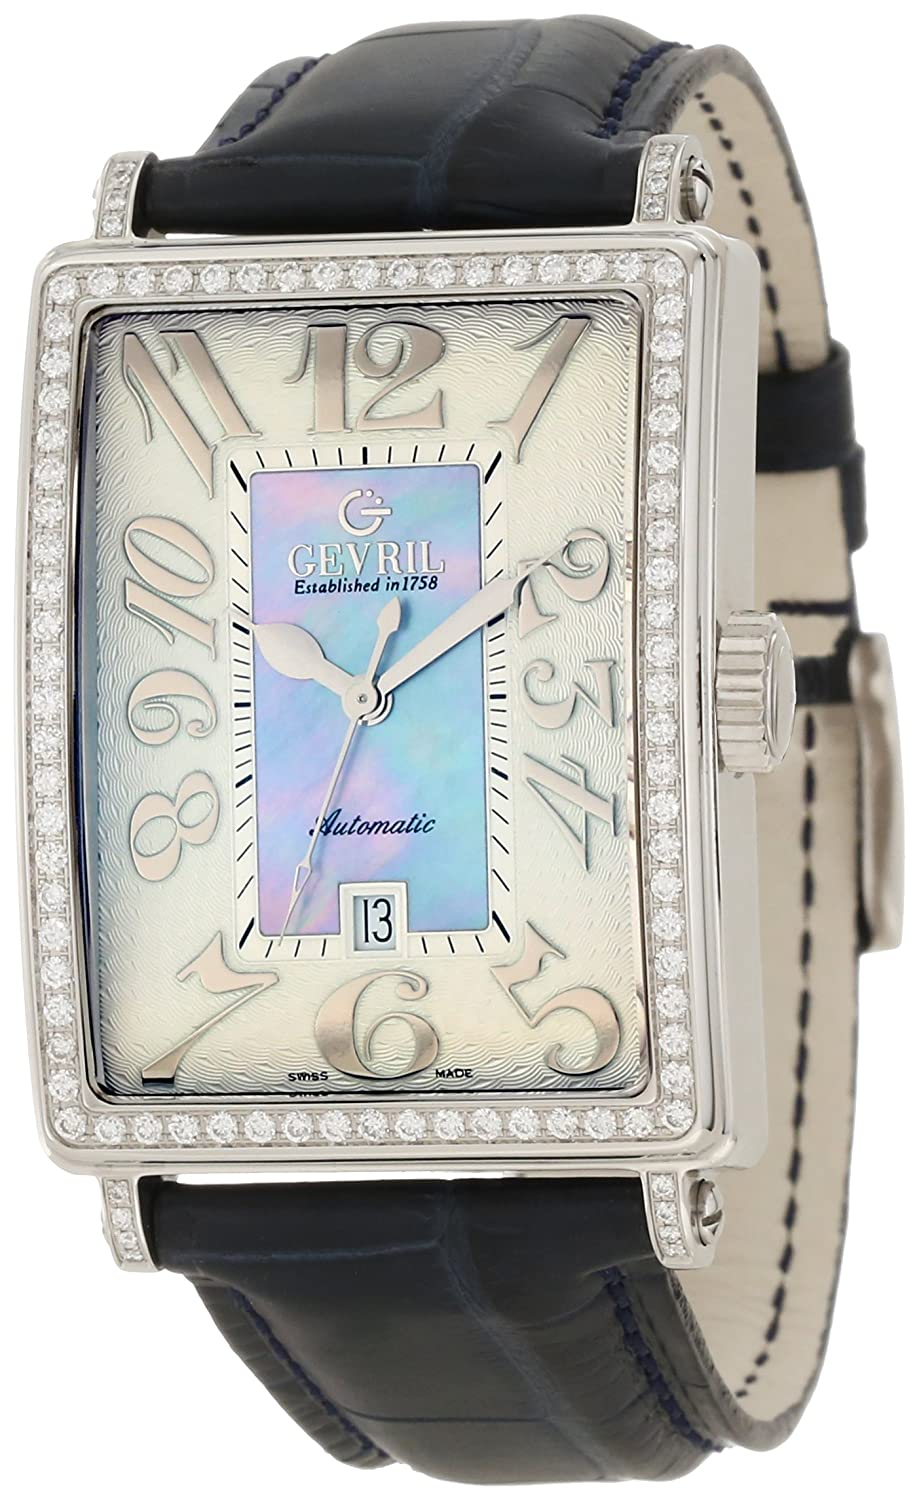 Gevril(ジェビル) Women's 6207NL Glamour Automatic Blue Diamond Watch B001CGB0LE